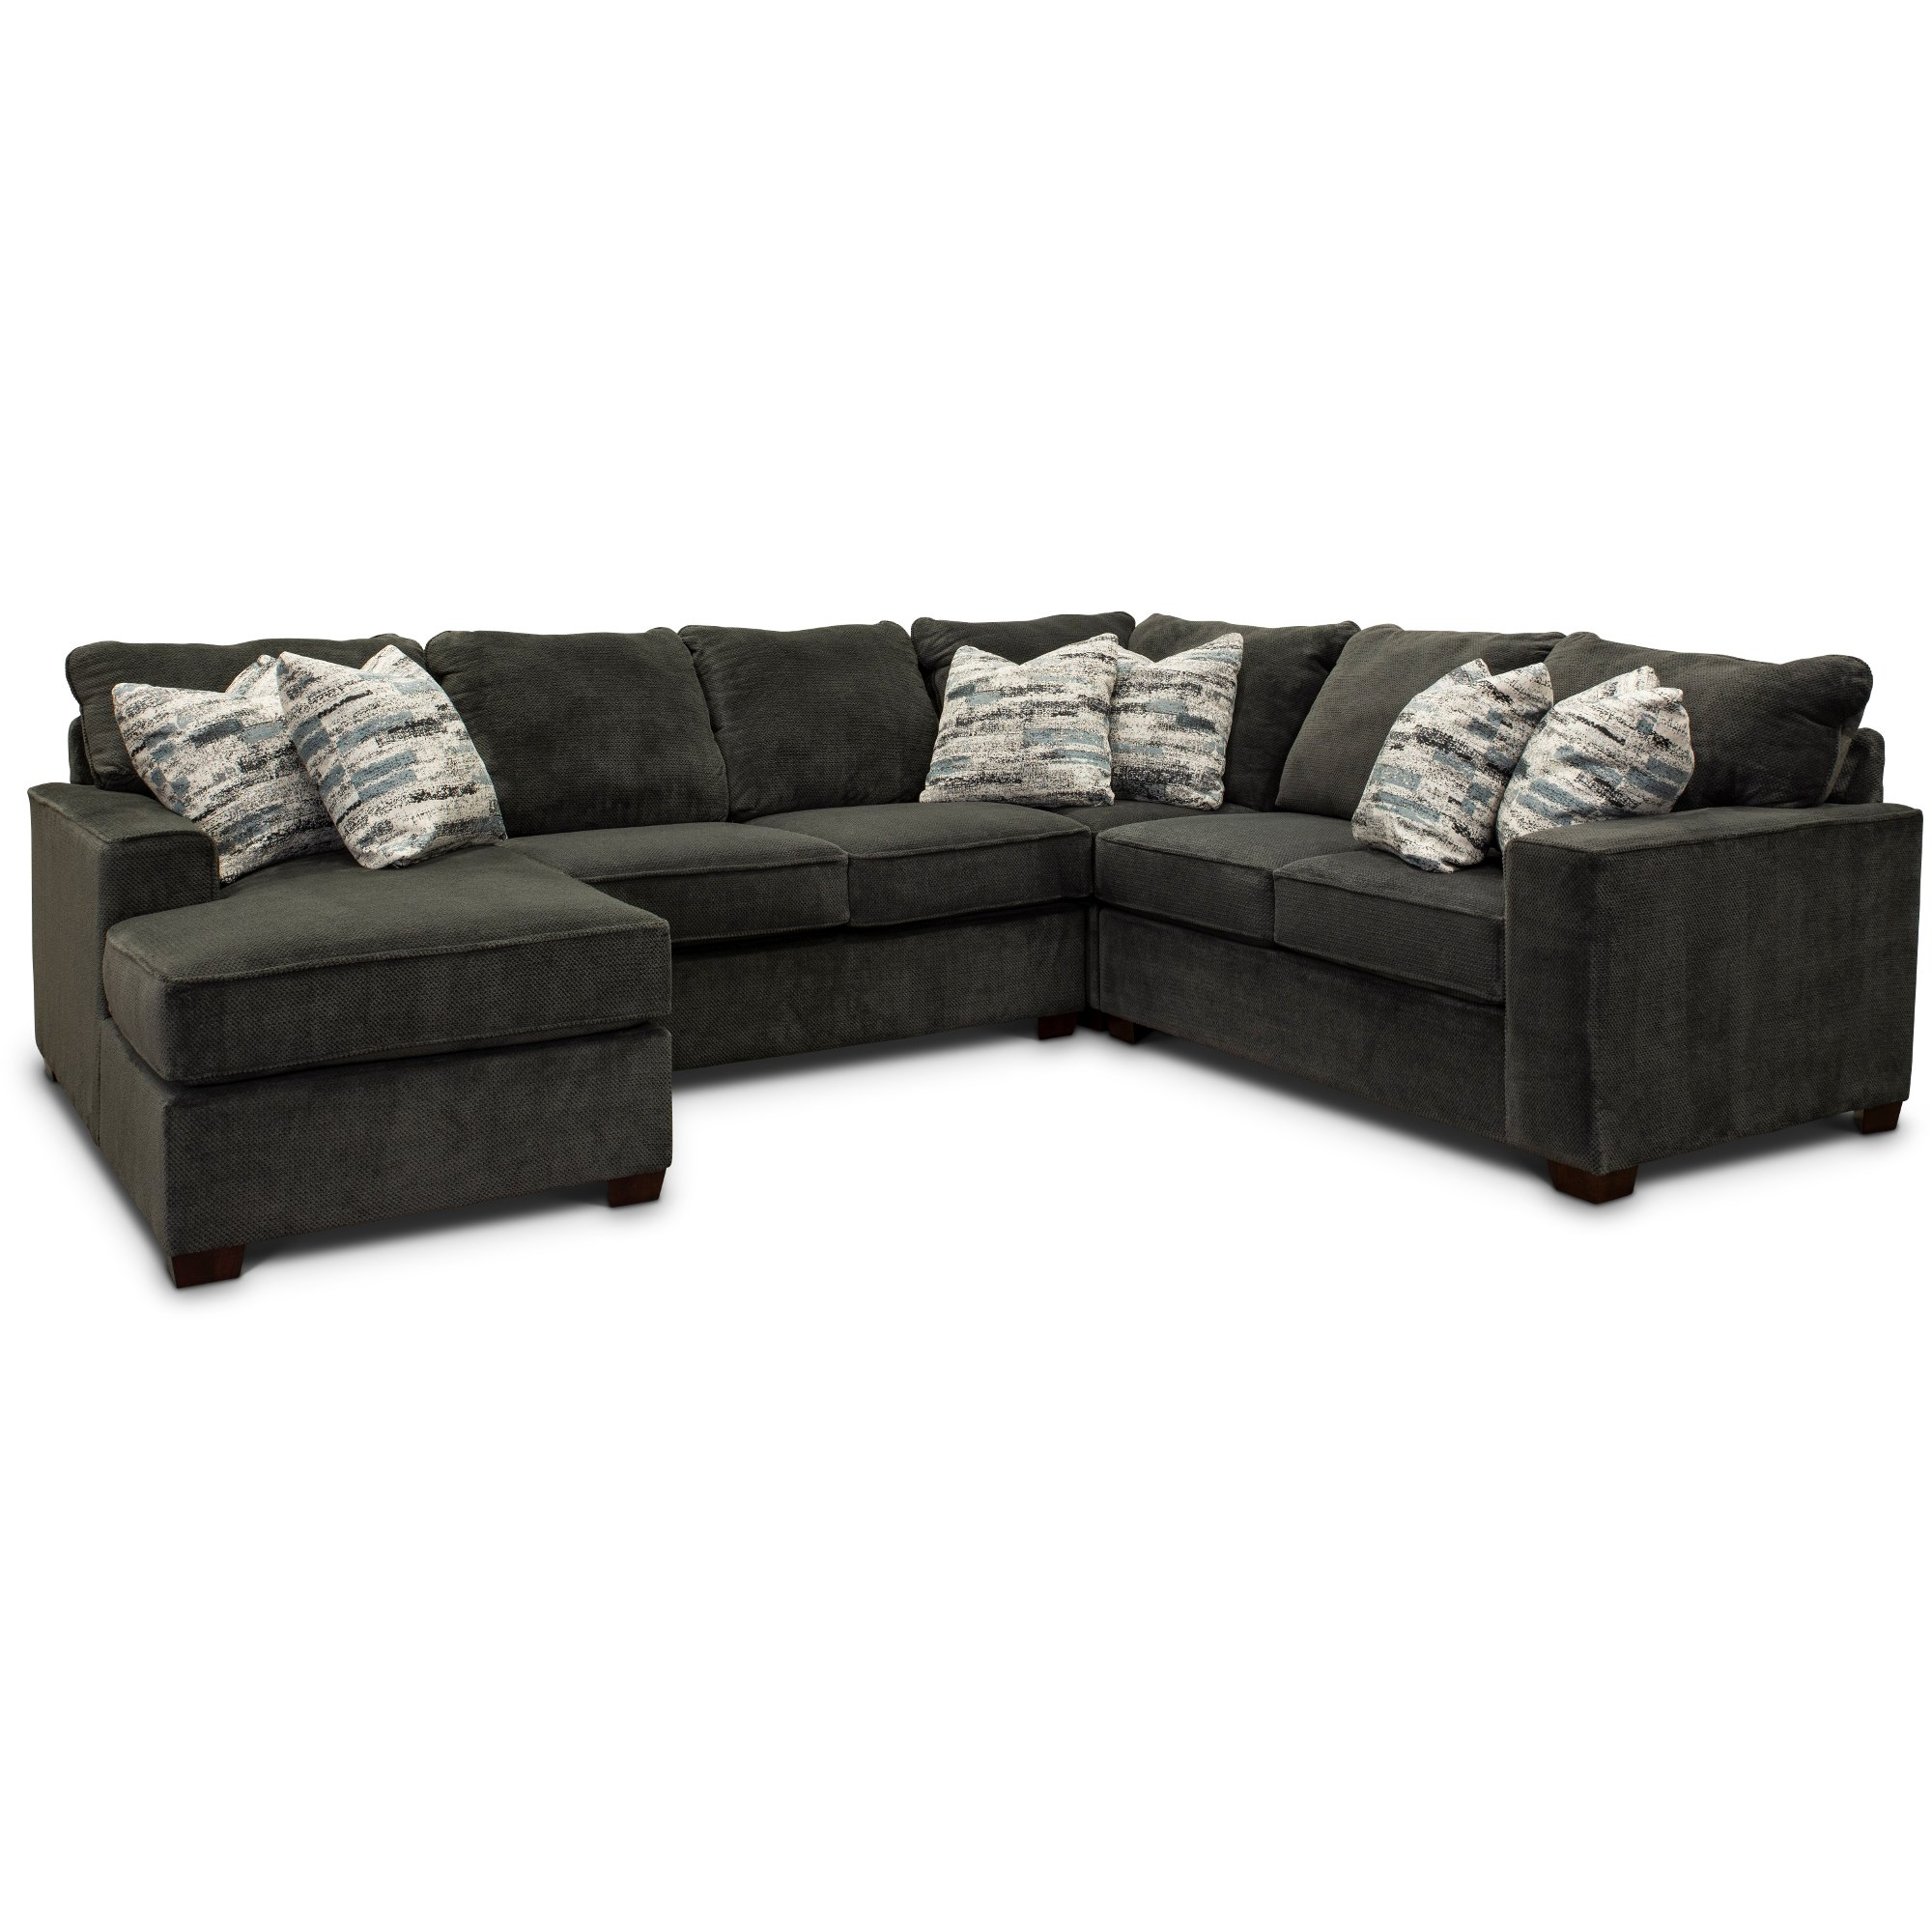 Magnificent Dark Gray 4 Piece Sectional Sofa With Raf Loveseat Autumn Alphanode Cool Chair Designs And Ideas Alphanodeonline